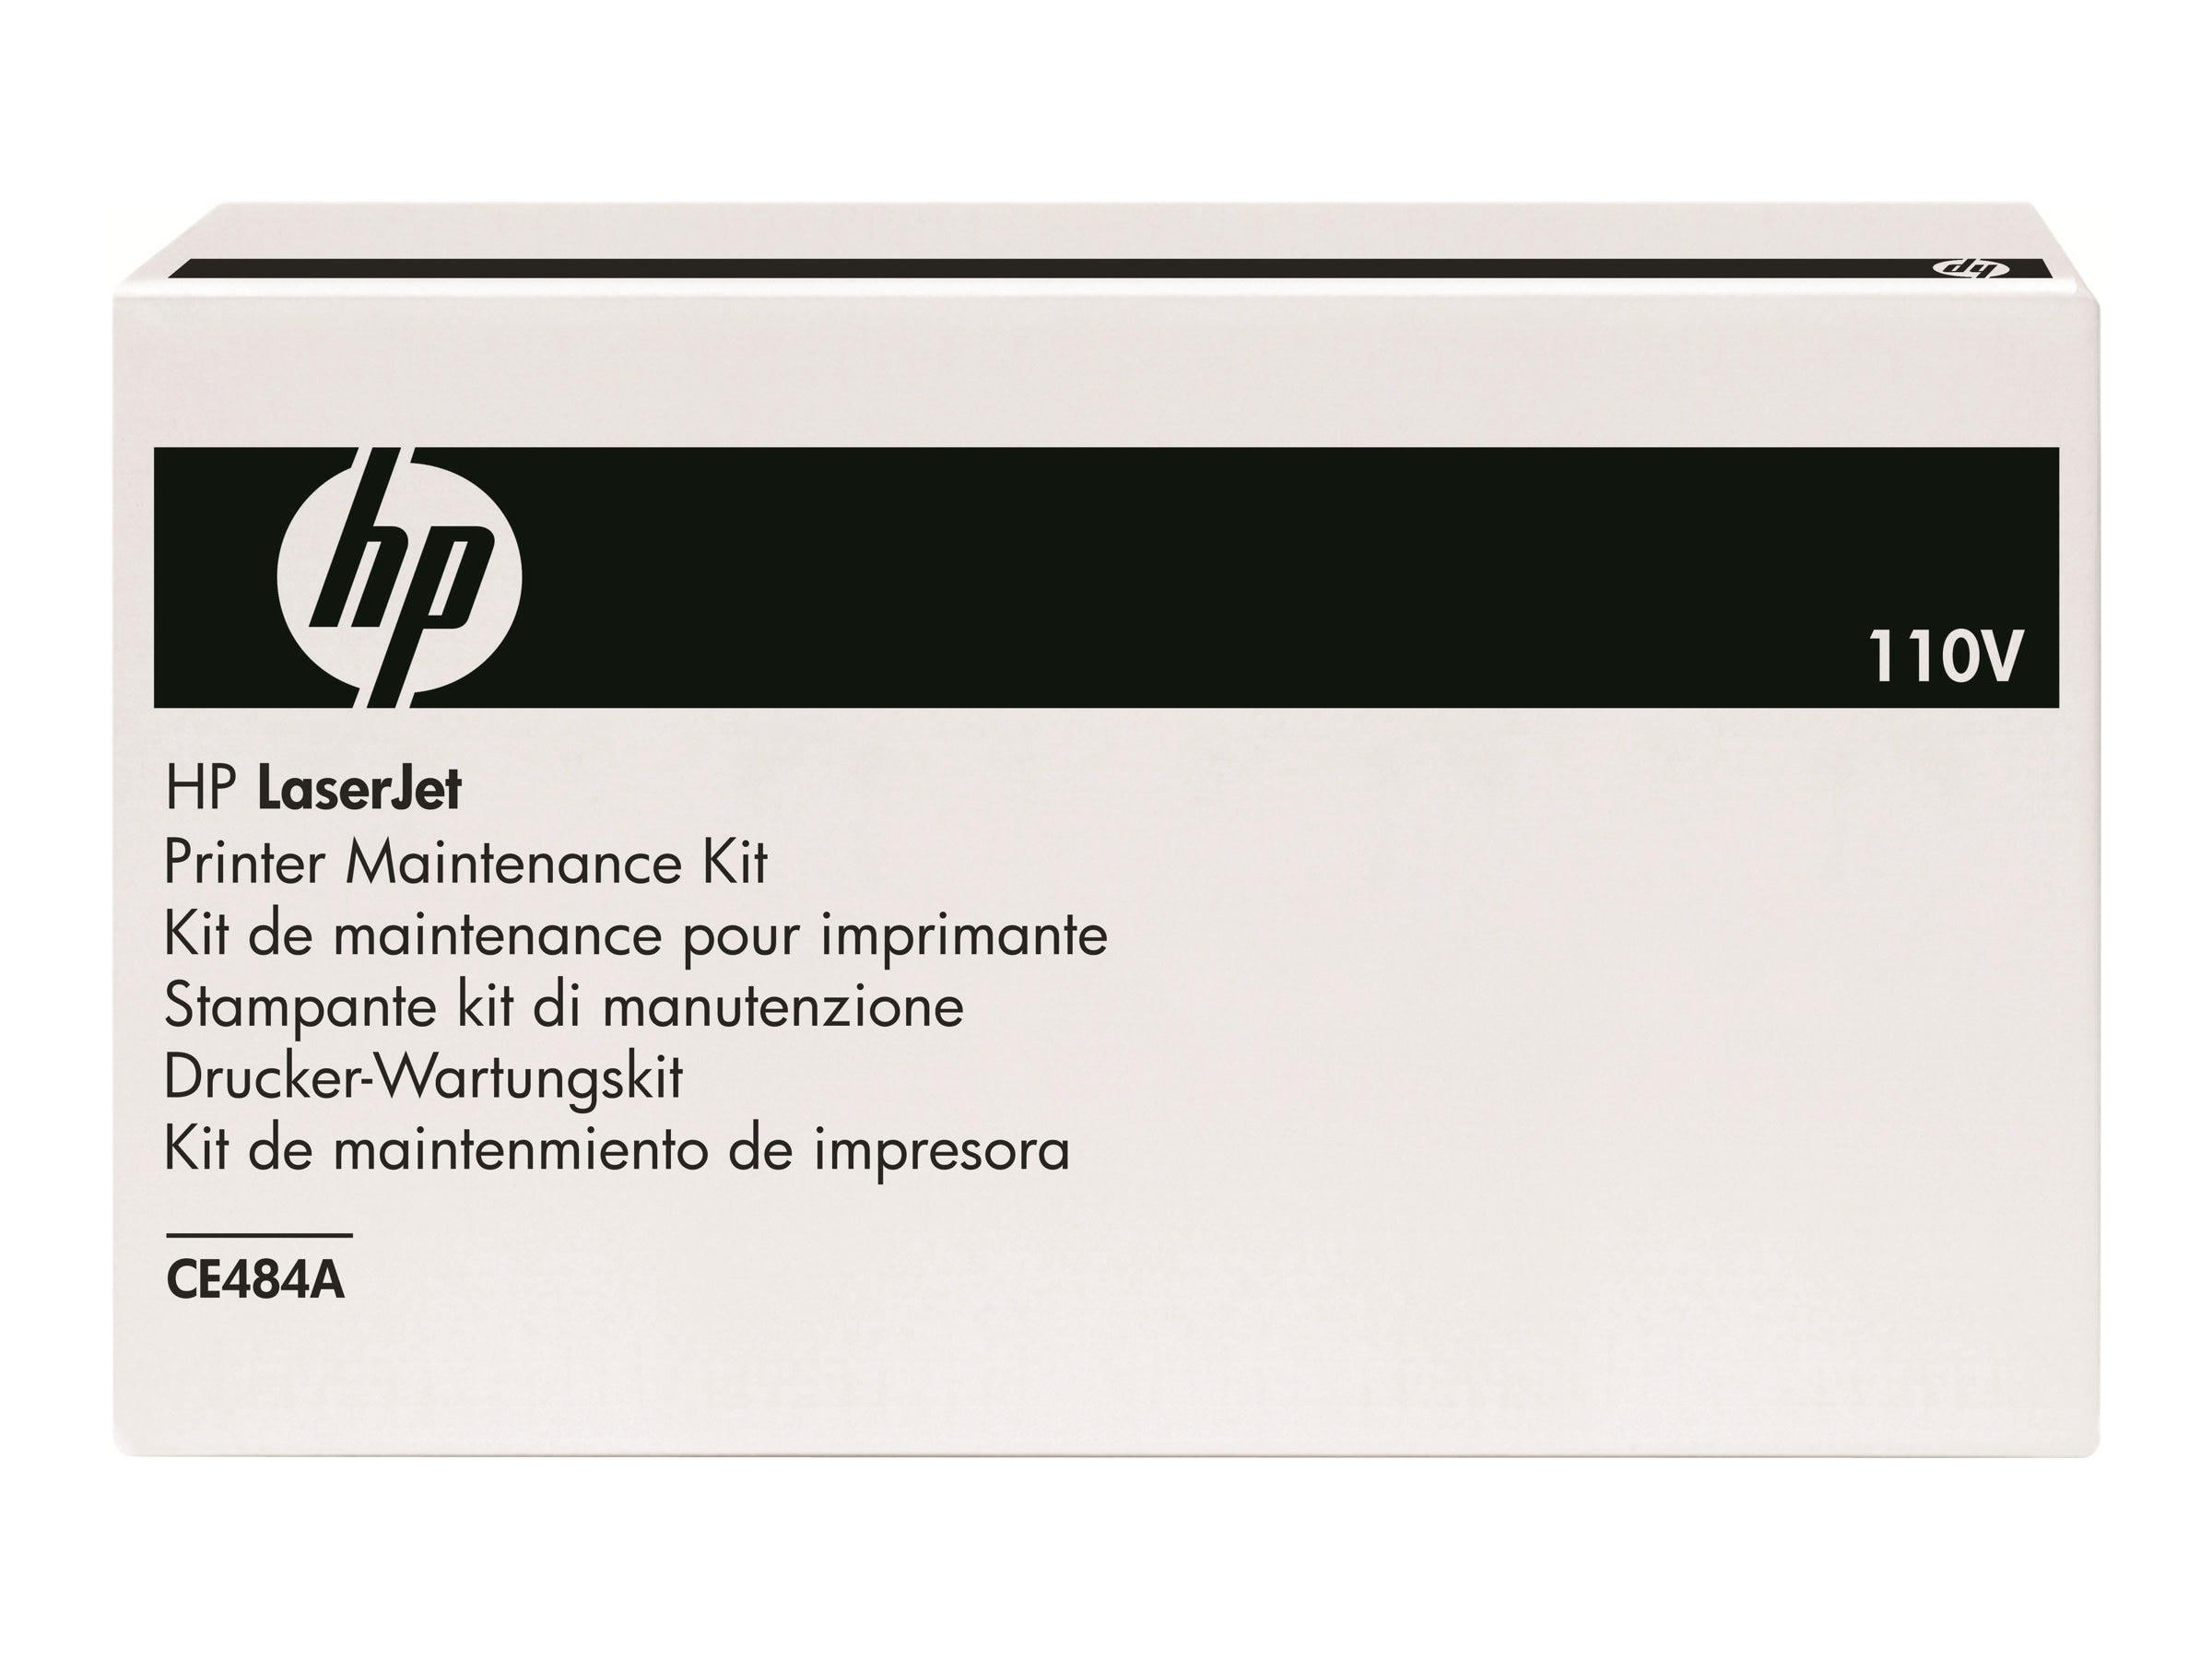 HP Inc. CE484A Image 1